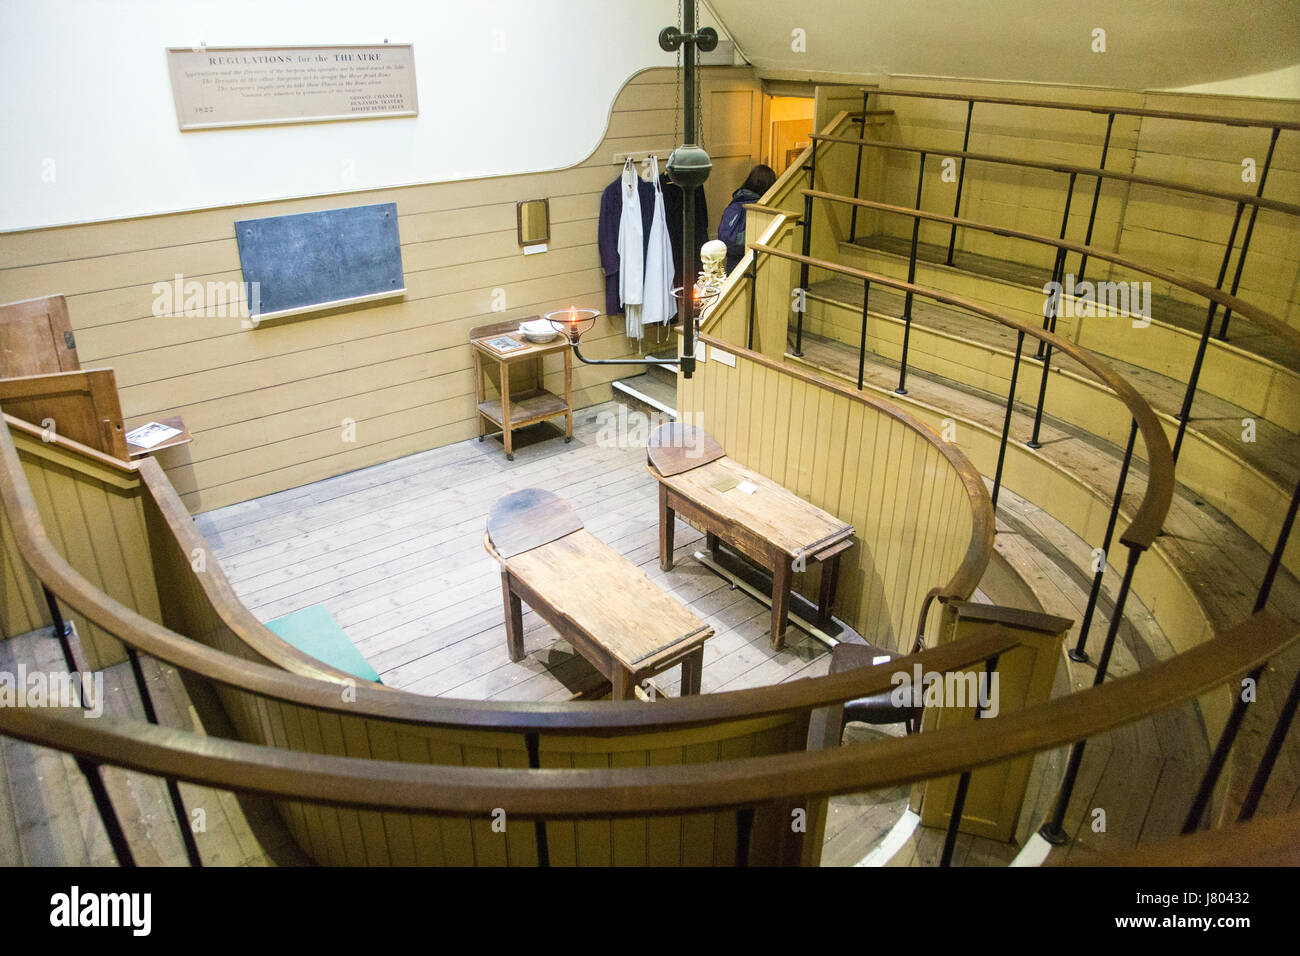 One of the oldest surviving operating theatres at the Old Operating Theatre Museum and Herb Garret, London, UK - Stock Image